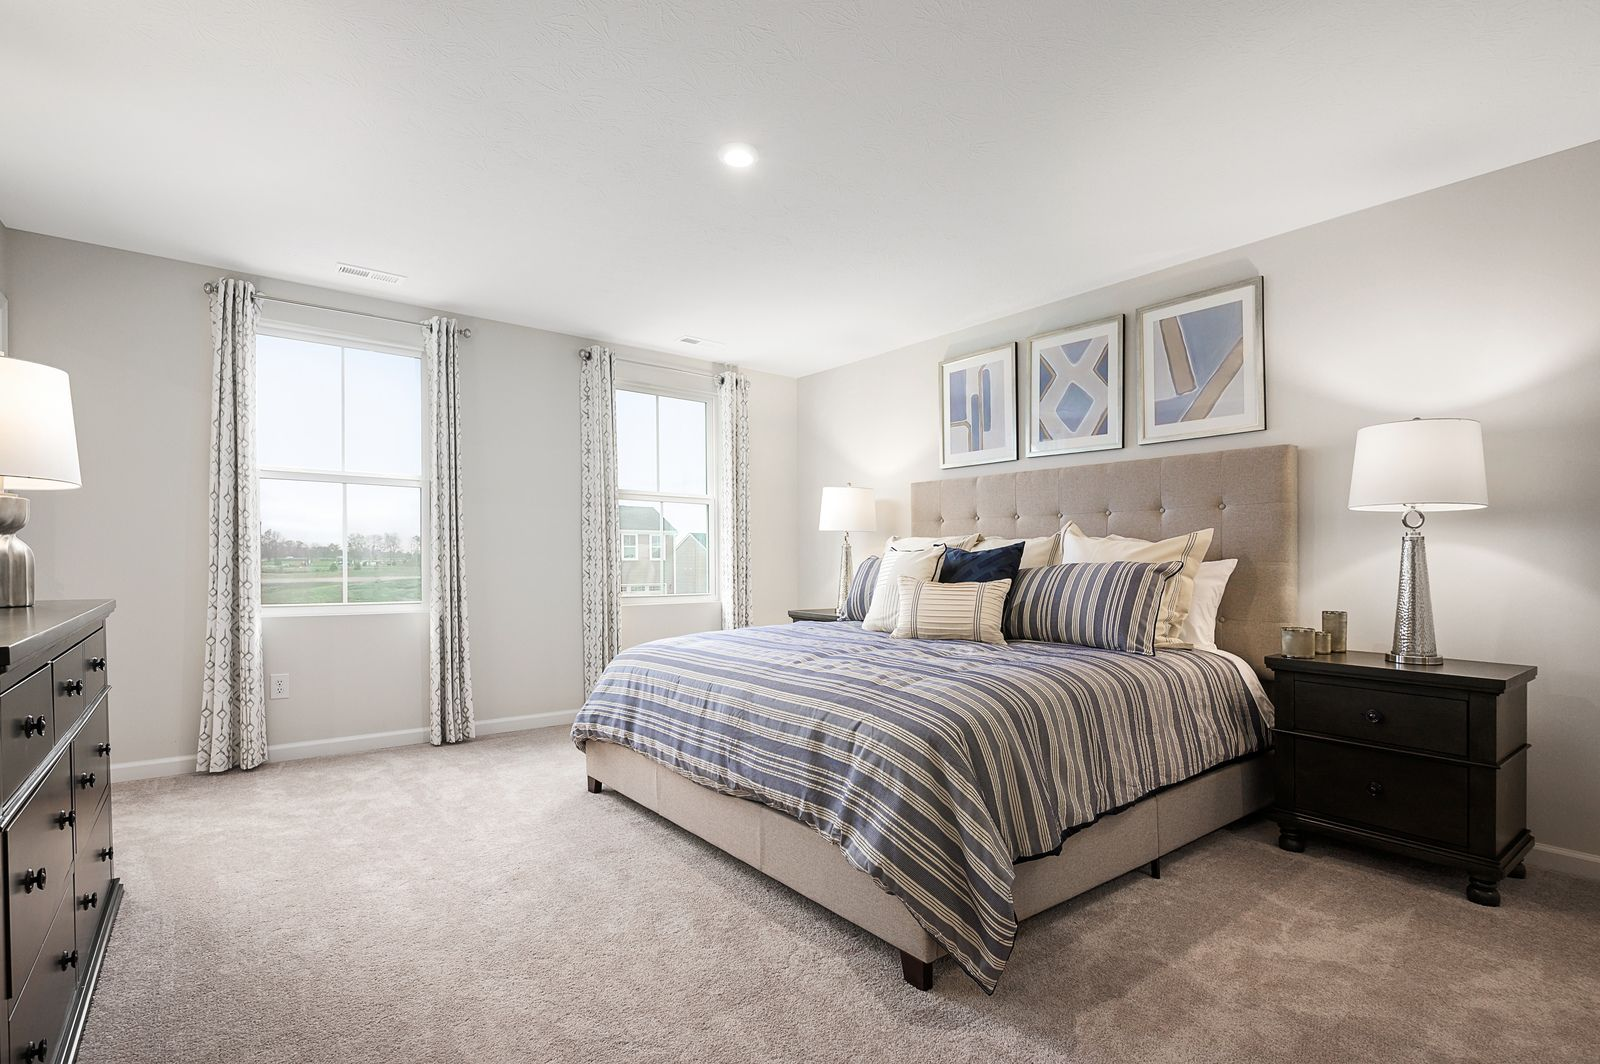 Bedroom featured in the Elm By Ryan Homes in Atlantic-Cape May, NJ